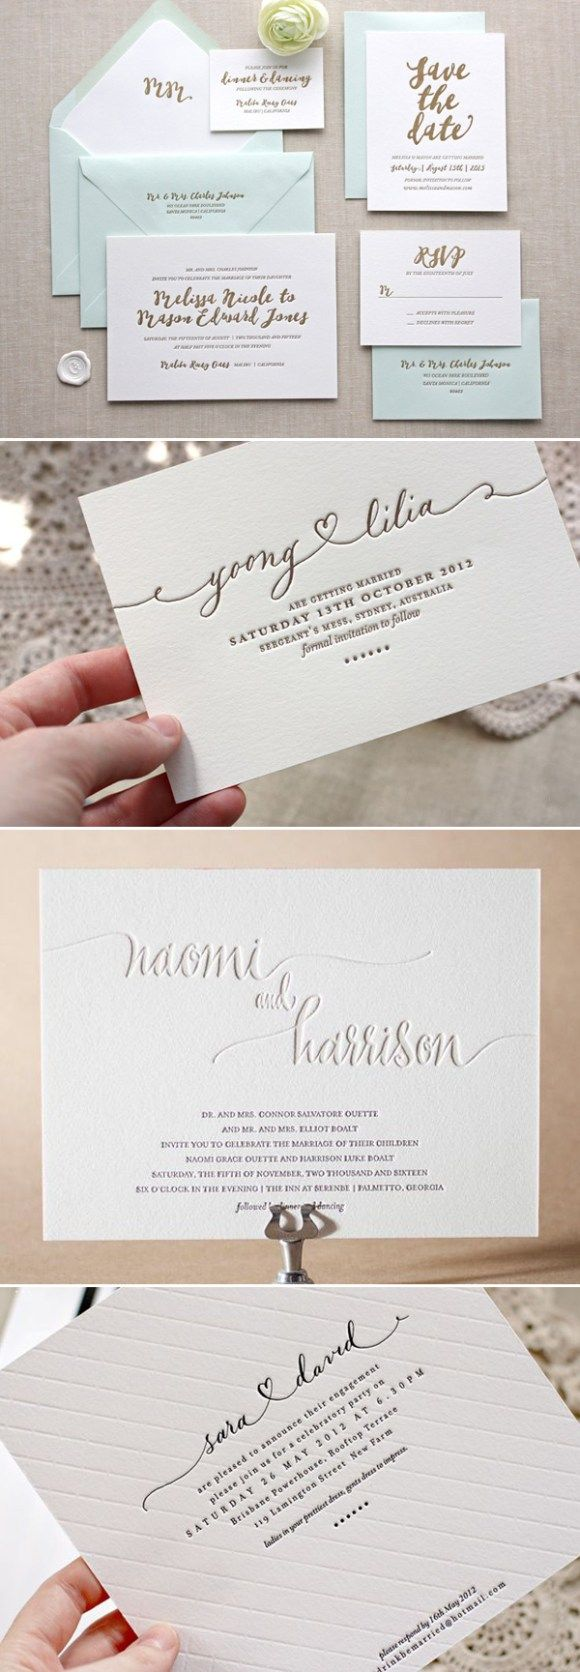 wedding card invite wordings%0A    Creative Invitation Ideas for Minimalist Couples